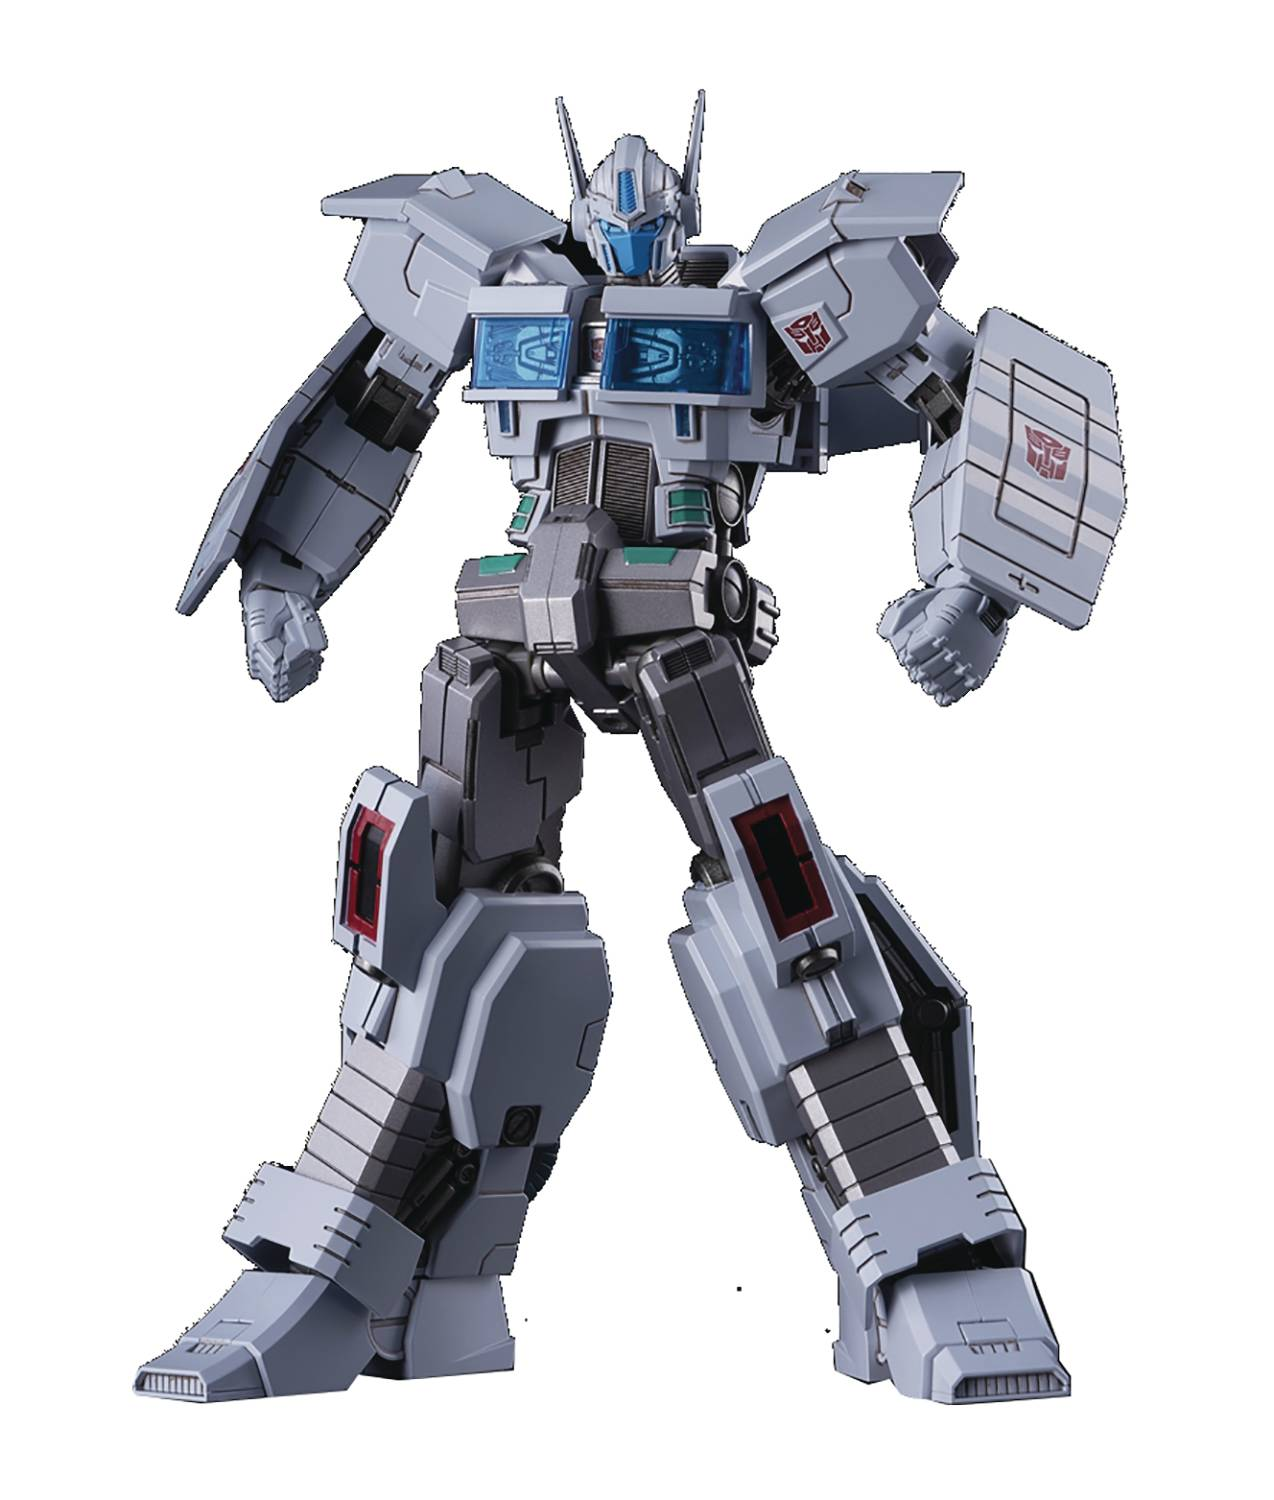 TRANSFORMERS ULTRA MAGNUS IDW VER FURAI MDL KIT  (FEB20